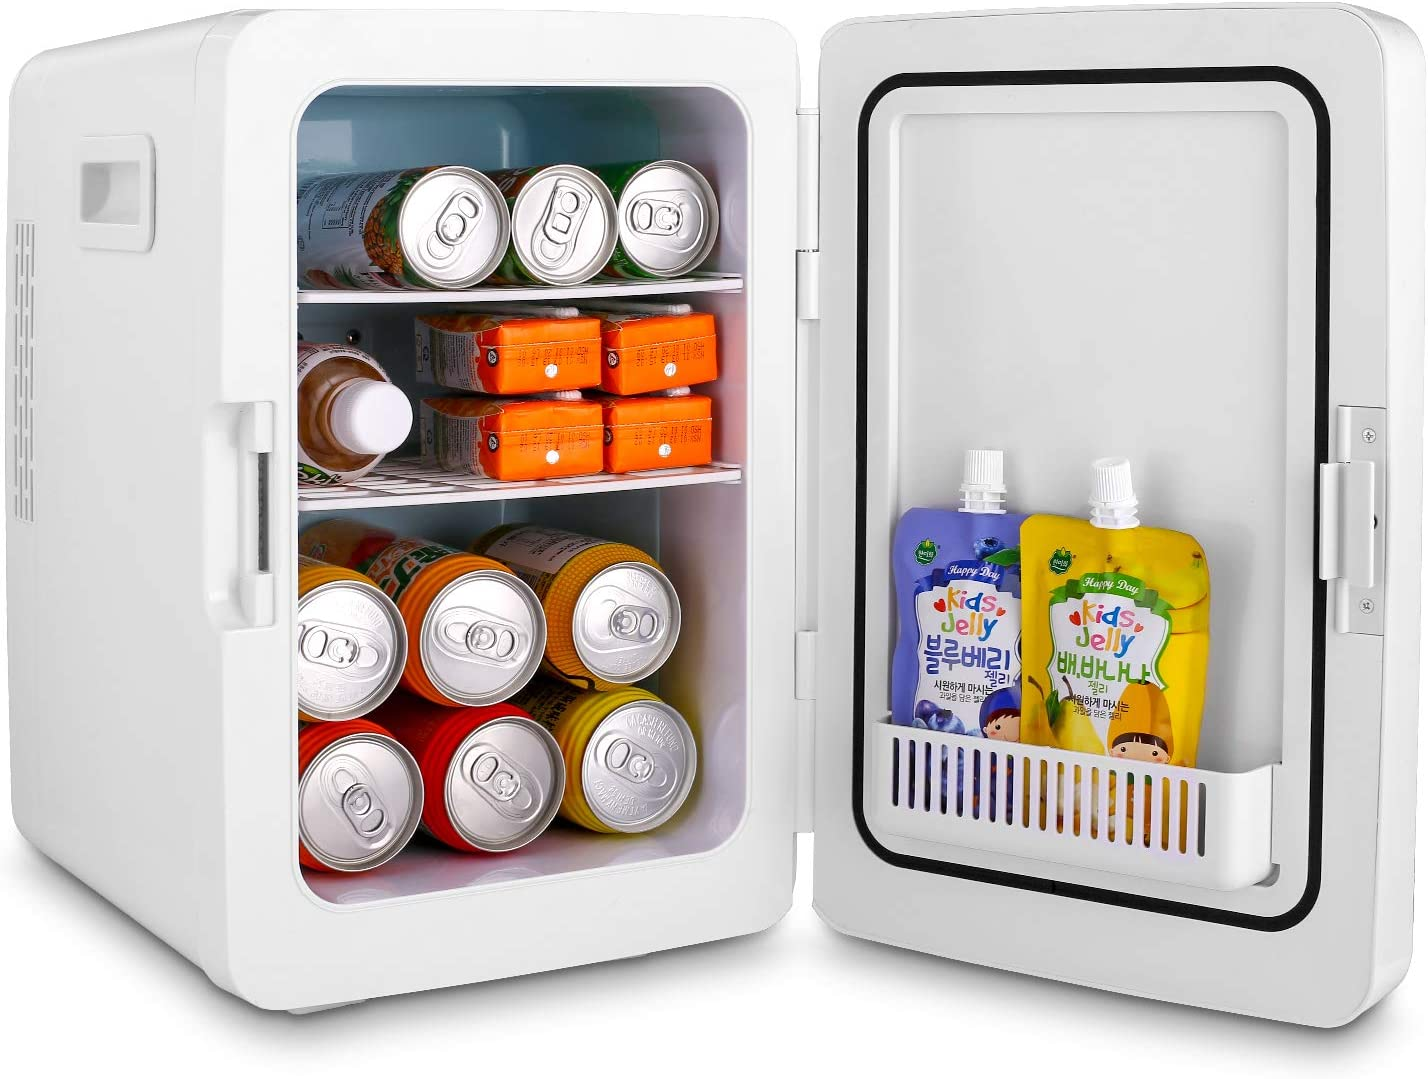 Mini Fridge 20liter Portable Ac Dc Powered Cooler And Warmer Dorm Car Ect Office Compact Refrigerator With Digital Thermostat And Control Temperature For Bedroom Kitchen Dining Small Appliances Rayvoltbike Com